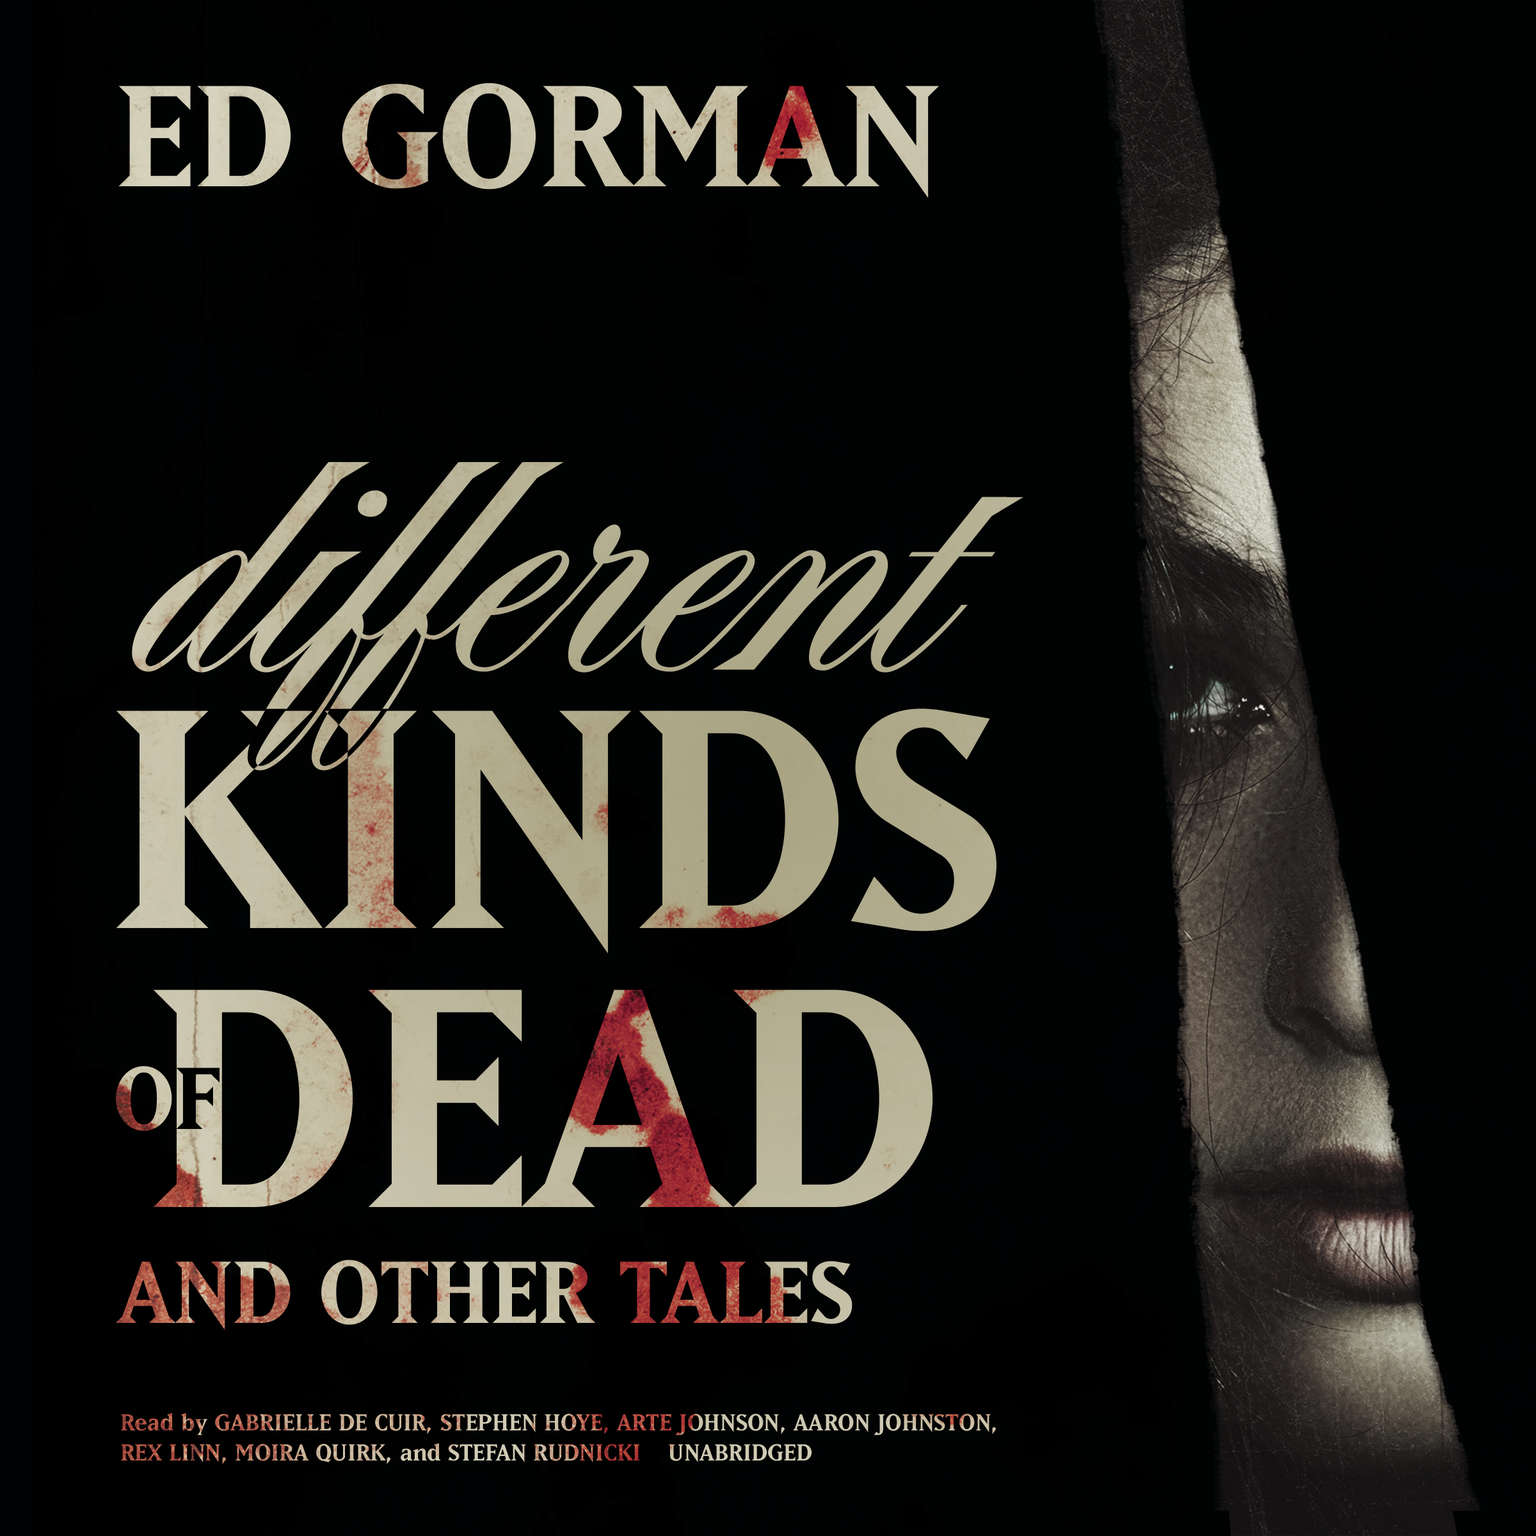 Download Different Kinds of Dead and Other Tales Audiobook by Ed Gorman for just $5 95